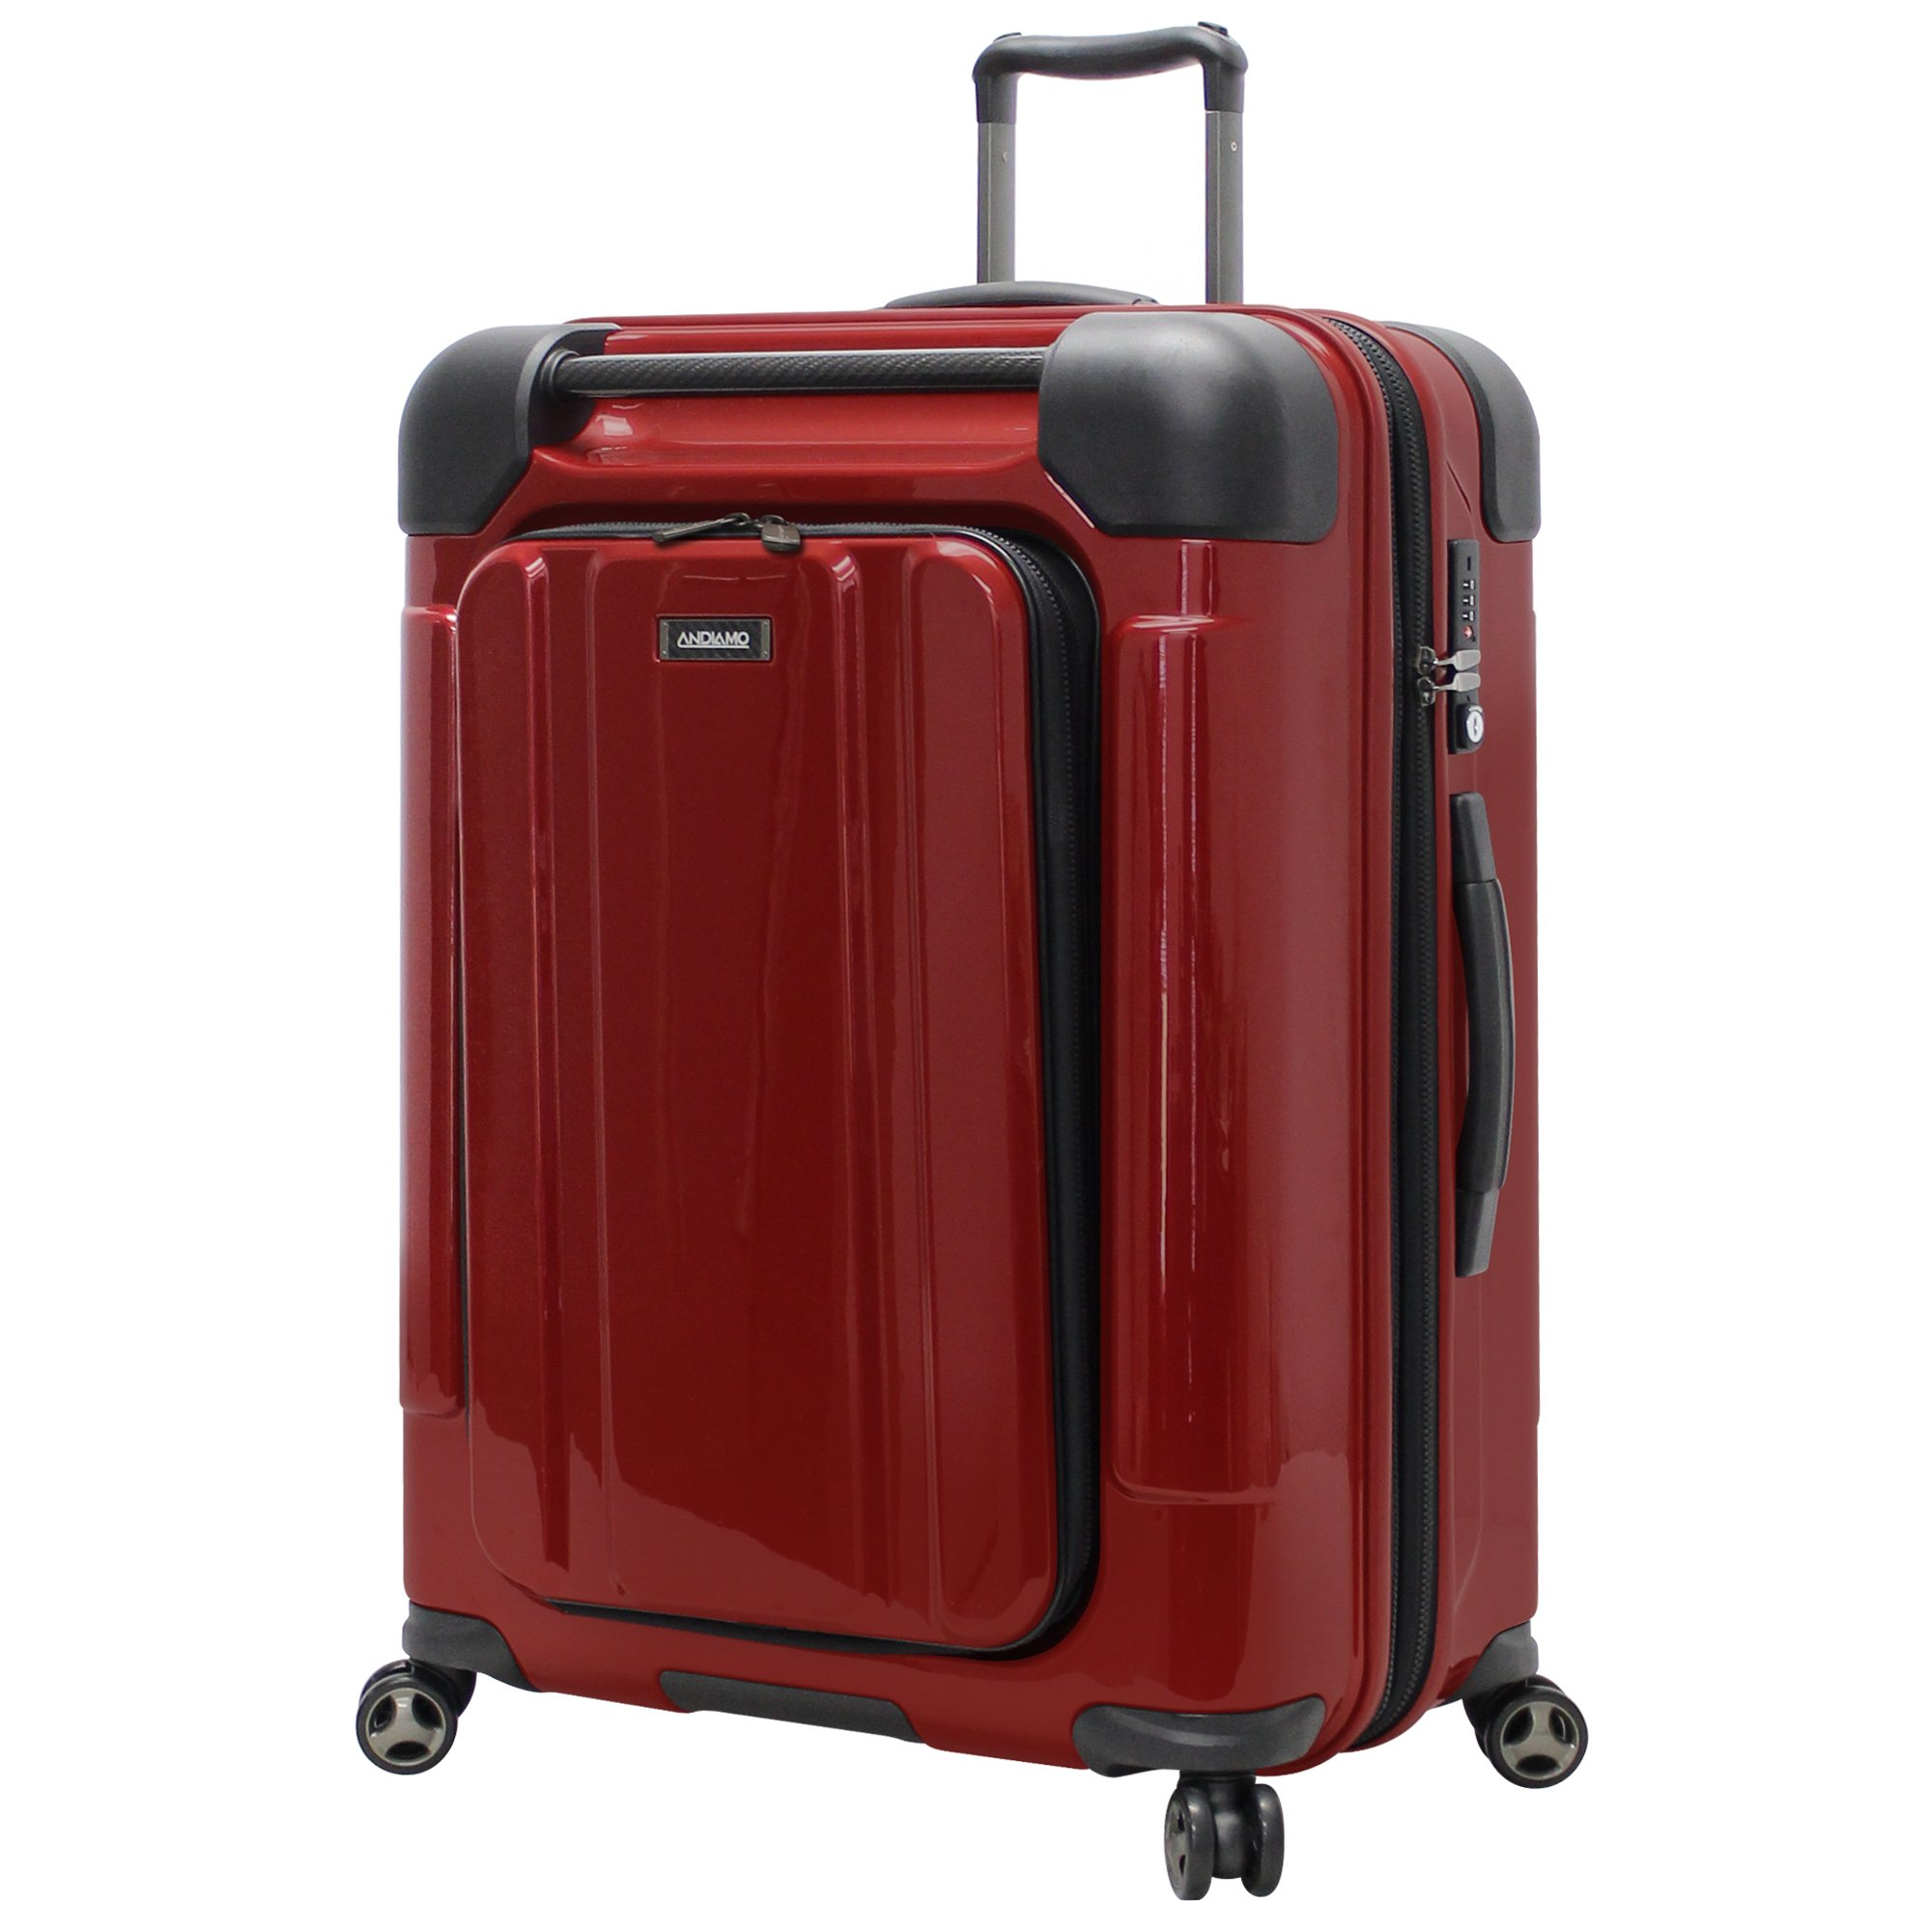 Andiamo Pantera Large Hard Case Luggage With Spinner Wheels (Lava Red)